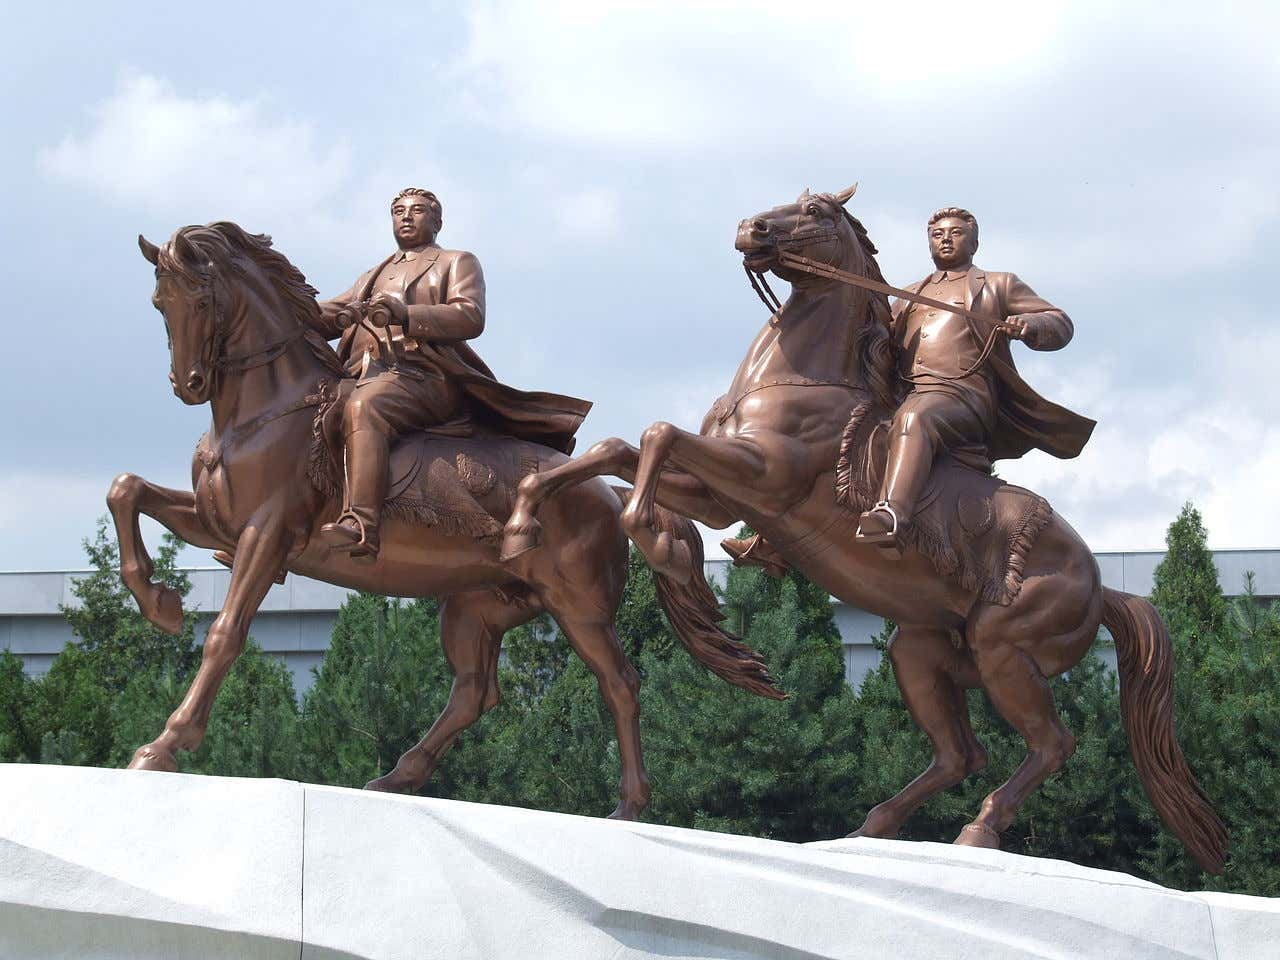 A grand statue located in Pyonyang of Kim Il Sung and Kim Jong Un riding steeds.